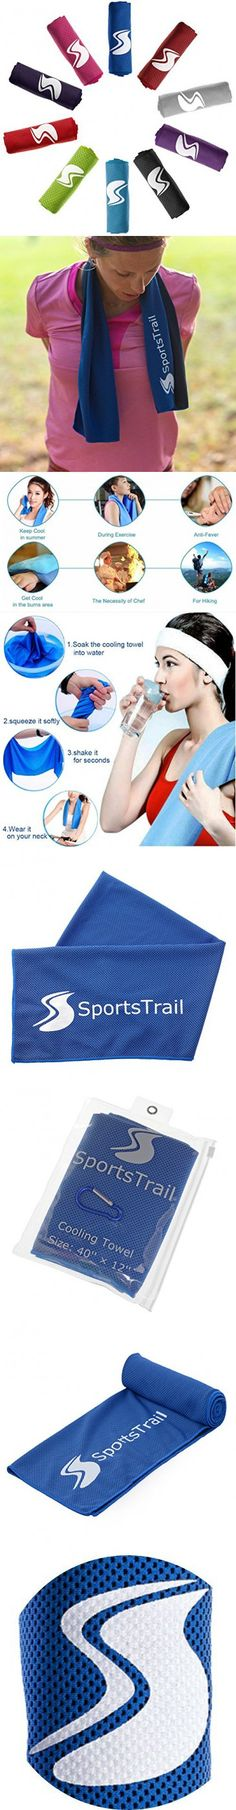 Cooling Towel, Ice Sports Towel, Stay Cool with 40''×12'' Microfiber Towel for All Activities, Keep Cool with Chilly Towel and Use it As Yoga Towel, Fitness Towel, Gym Towel, Golf Towel/Waterproof Bag